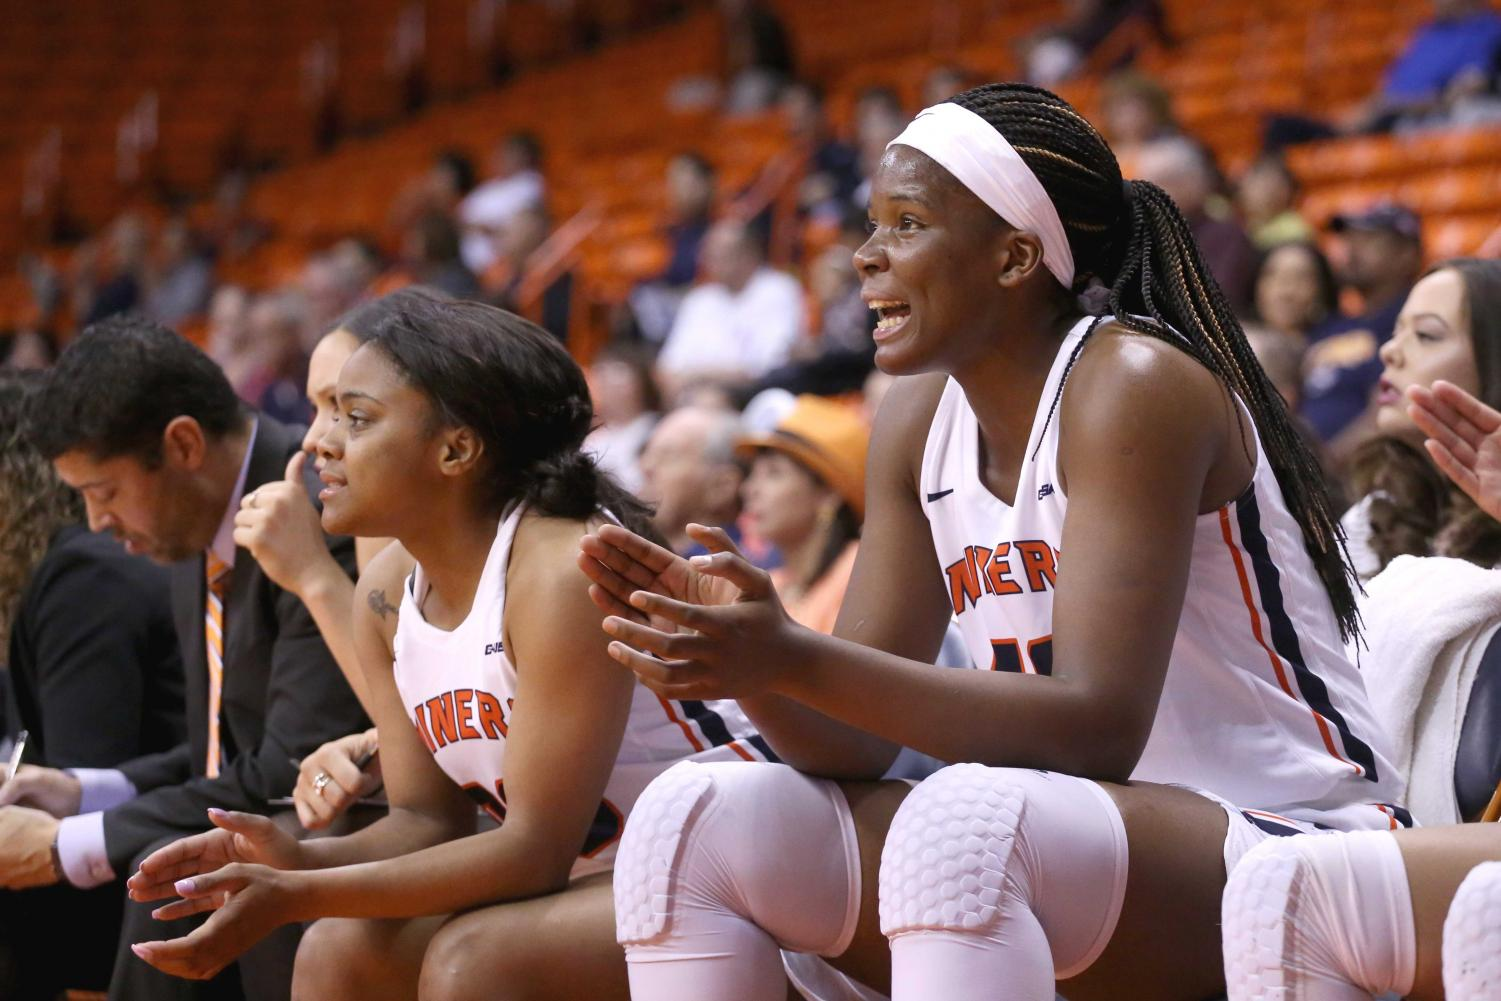 Senior+forward+Tamara+Seda+cheers+for+defense+from+the+side+line+on+Saturday%2C+March+3+at+the+Don+Haskins+Center.